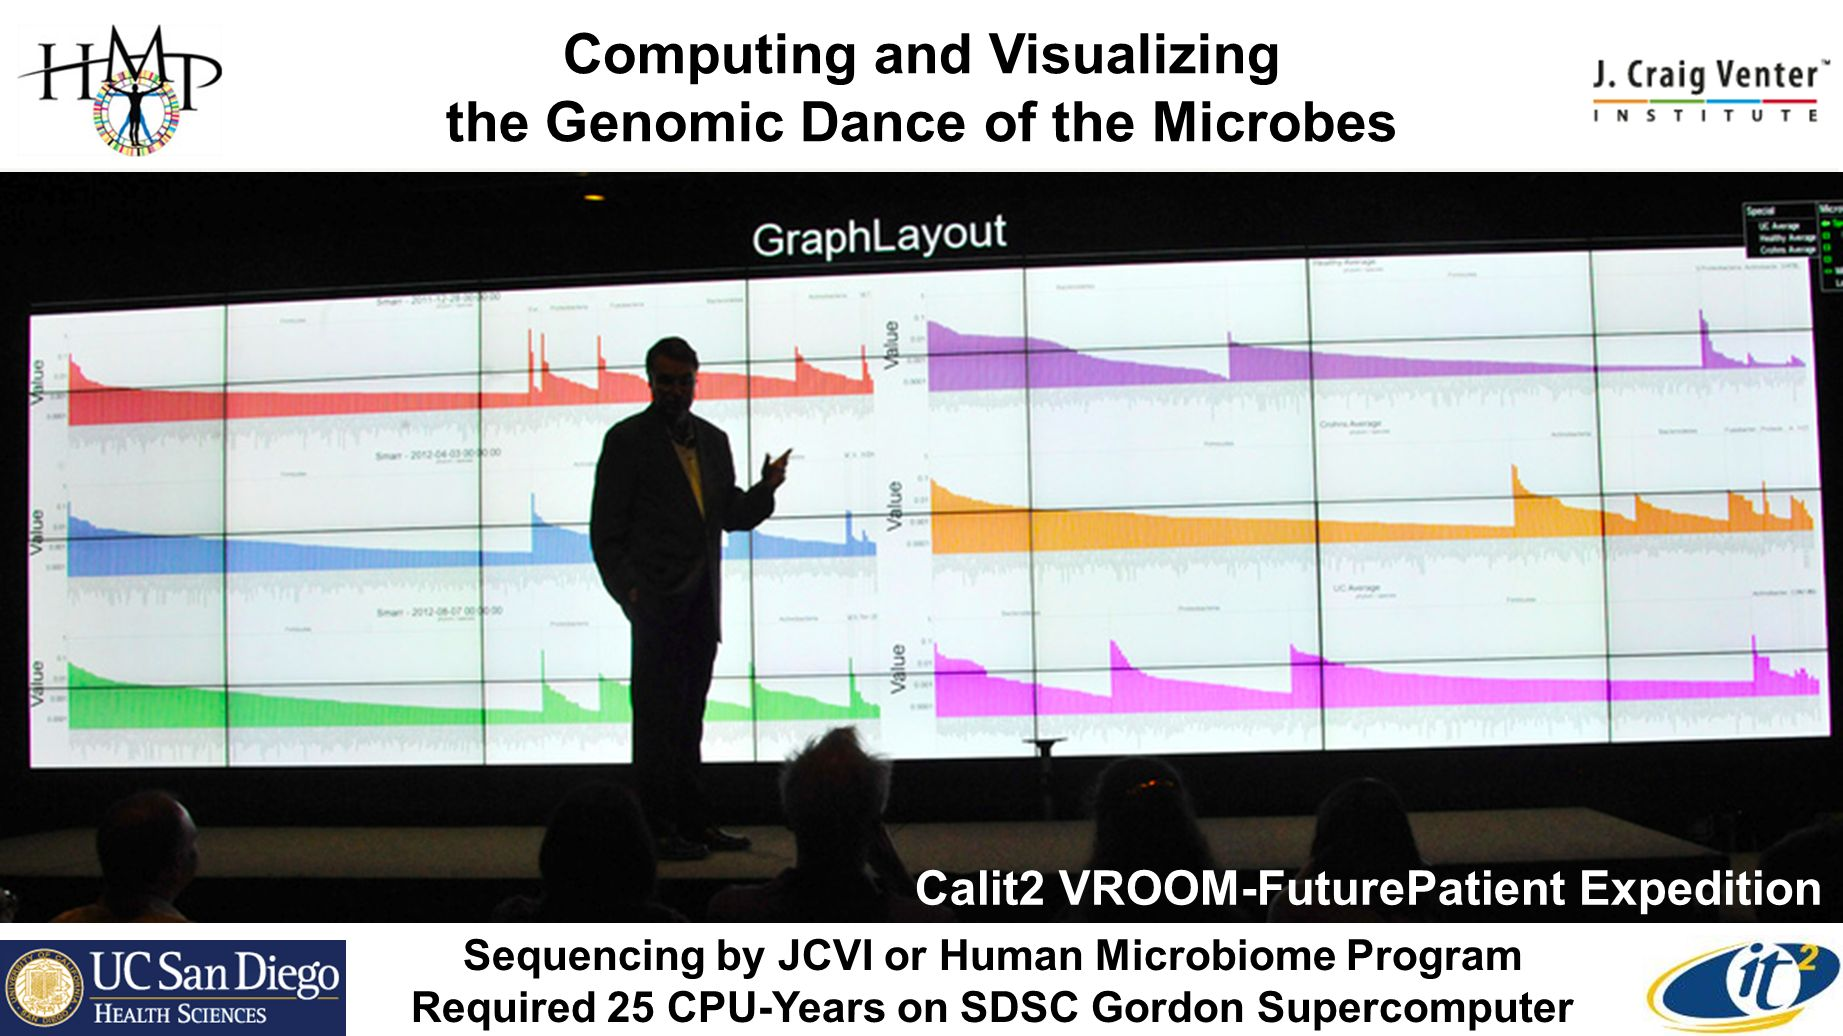 Computing and Visualizing the Genomic Dance of the Microbes Sequencing by JCVI or Human Microbiome Program Required 25 CPU-Years on SDSC Gordon Supercomputer Calit2 VROOM-FuturePatient Expedition